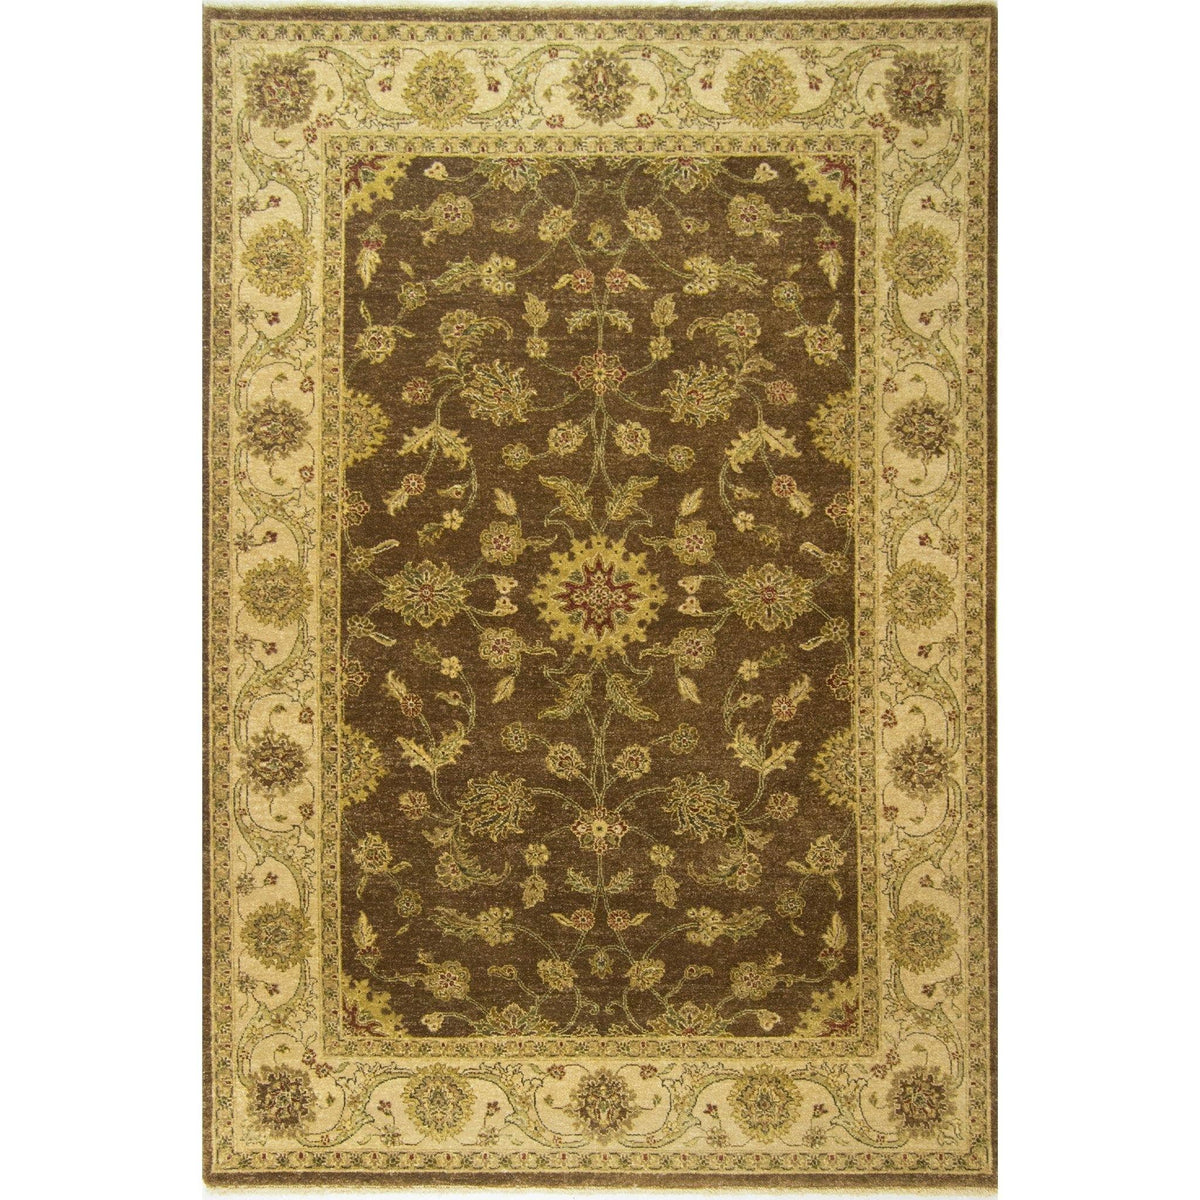 Hand-knotted Wool Chobi Rug 180cm x 260cm Persian-Rug | House-of-Haghi | NewMarket | Auckland | NZ | Handmade Persian Rugs | Hand Knotted Persian Rugs